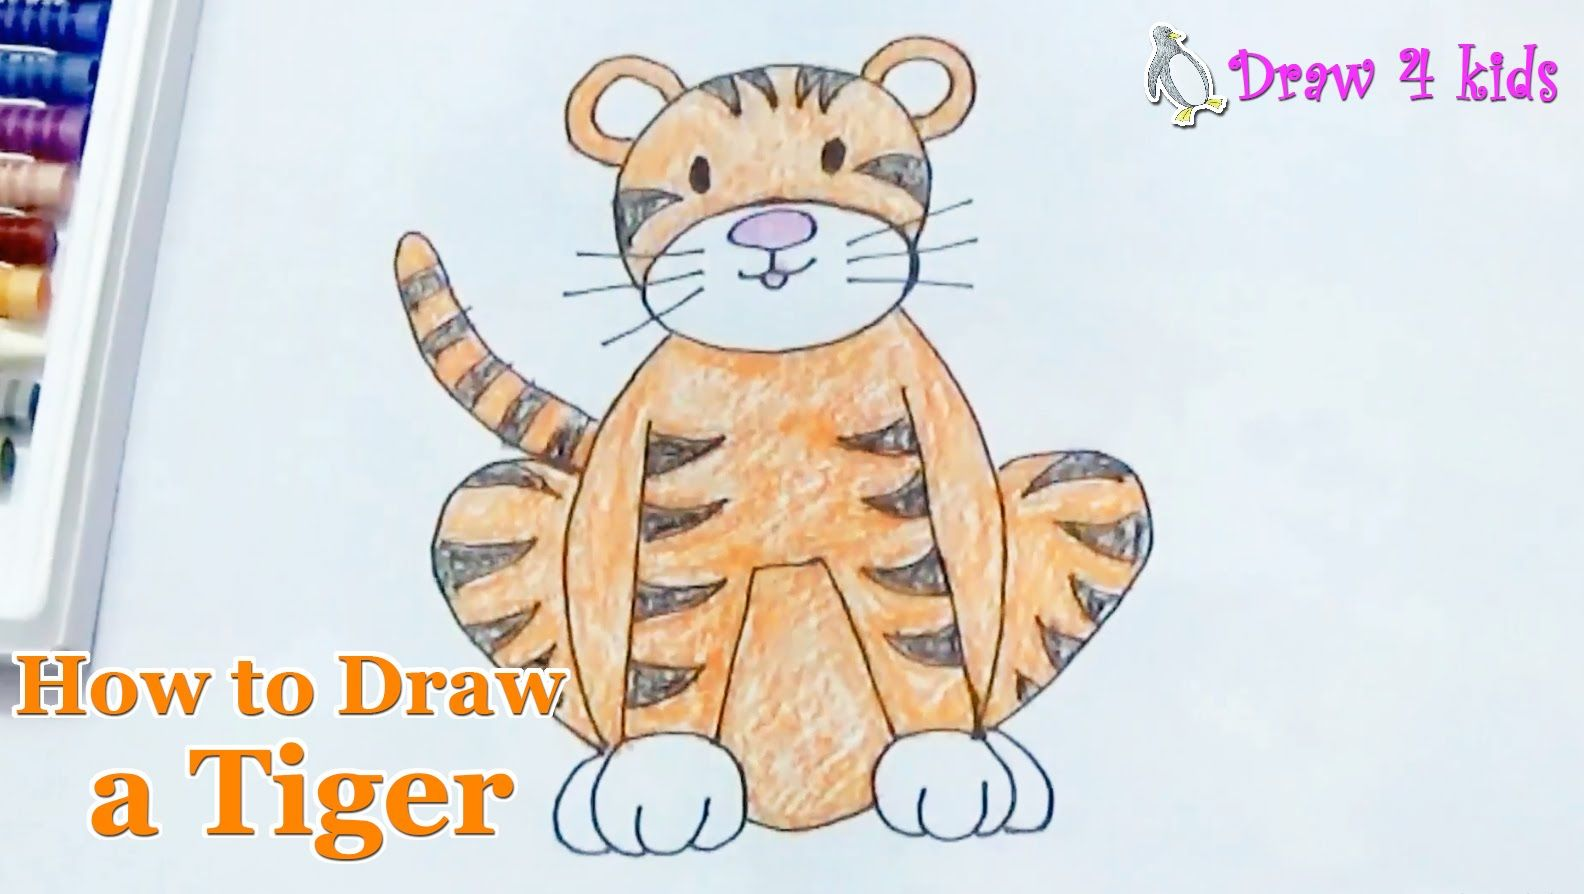 how to draw a tiger step by step easy cách vẽ con hổ how to